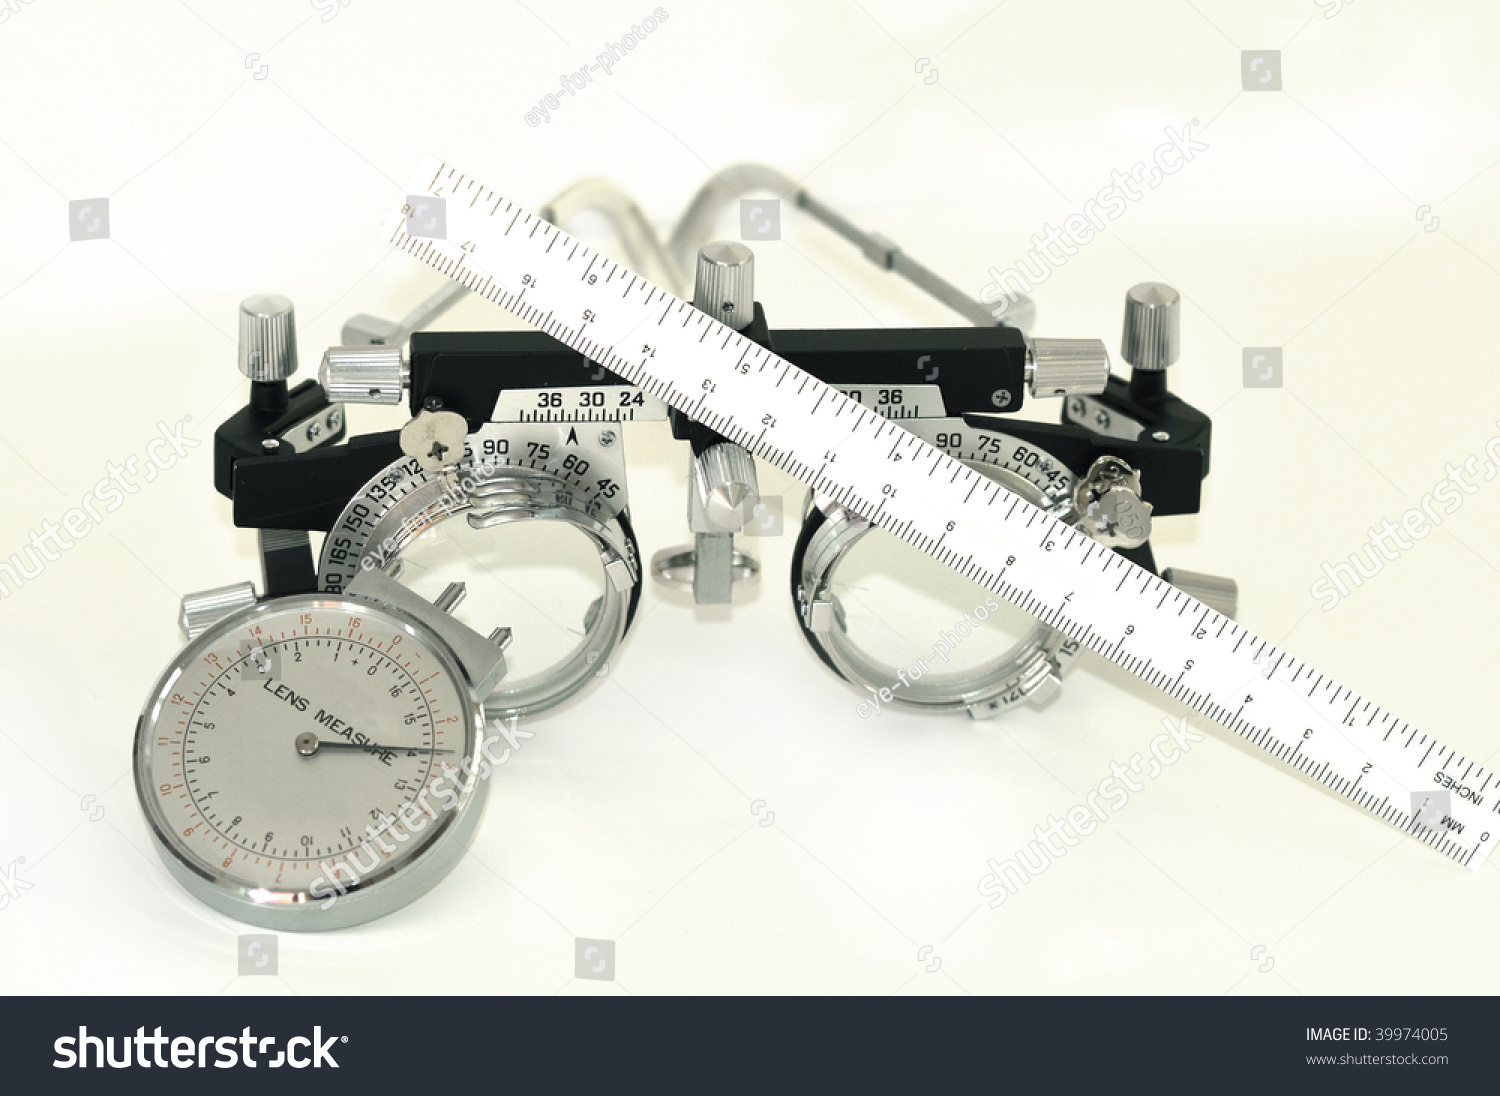 measuring tool trial frame and lens clock optical tools for measuring glasses